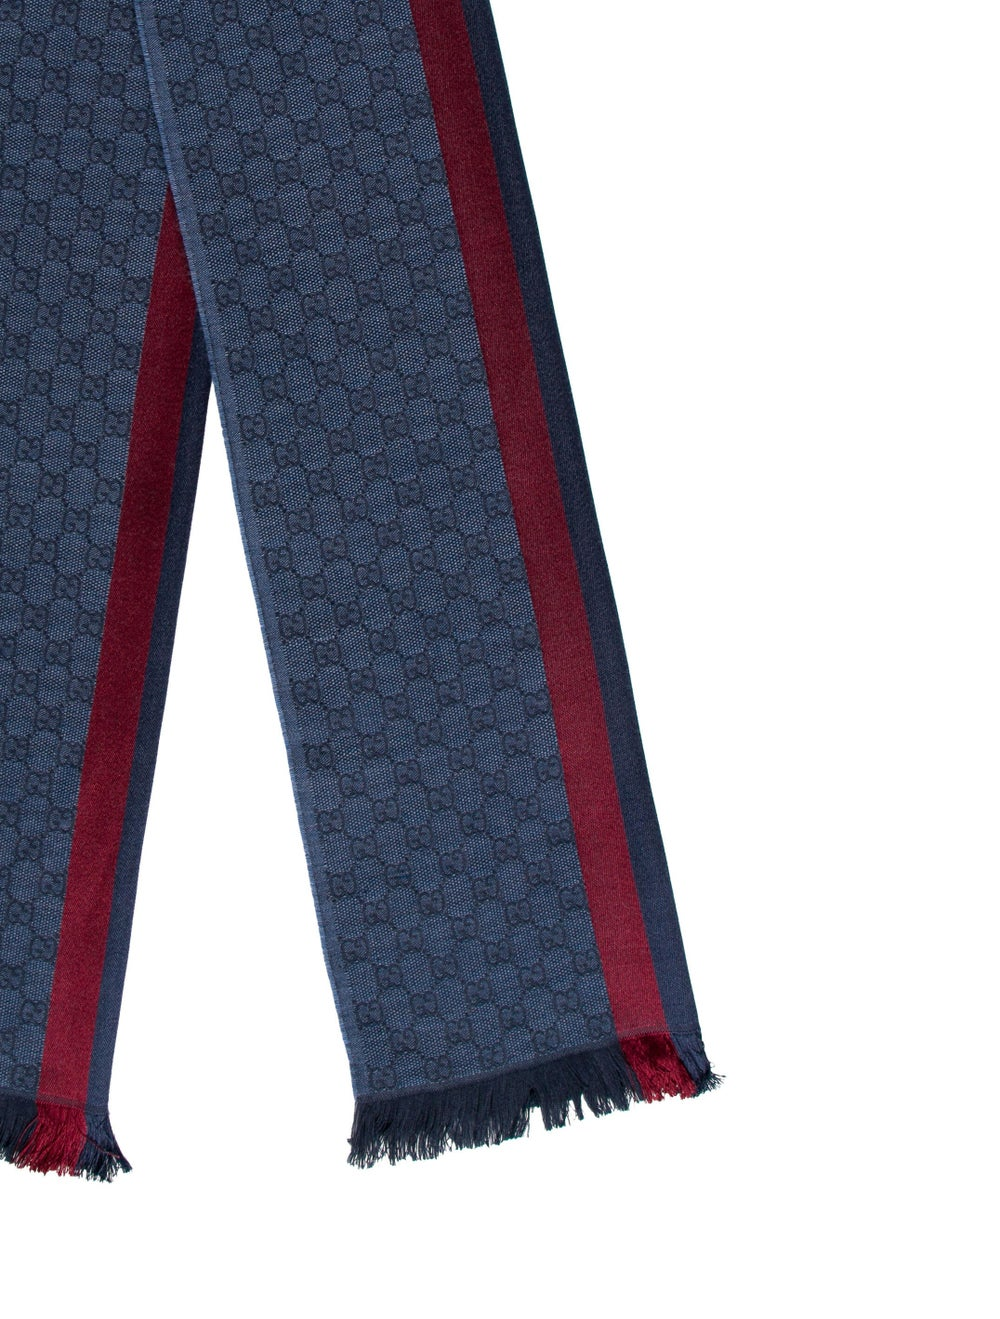 Gucci Wool Web Scarf w/ Tags multicolor - image 2